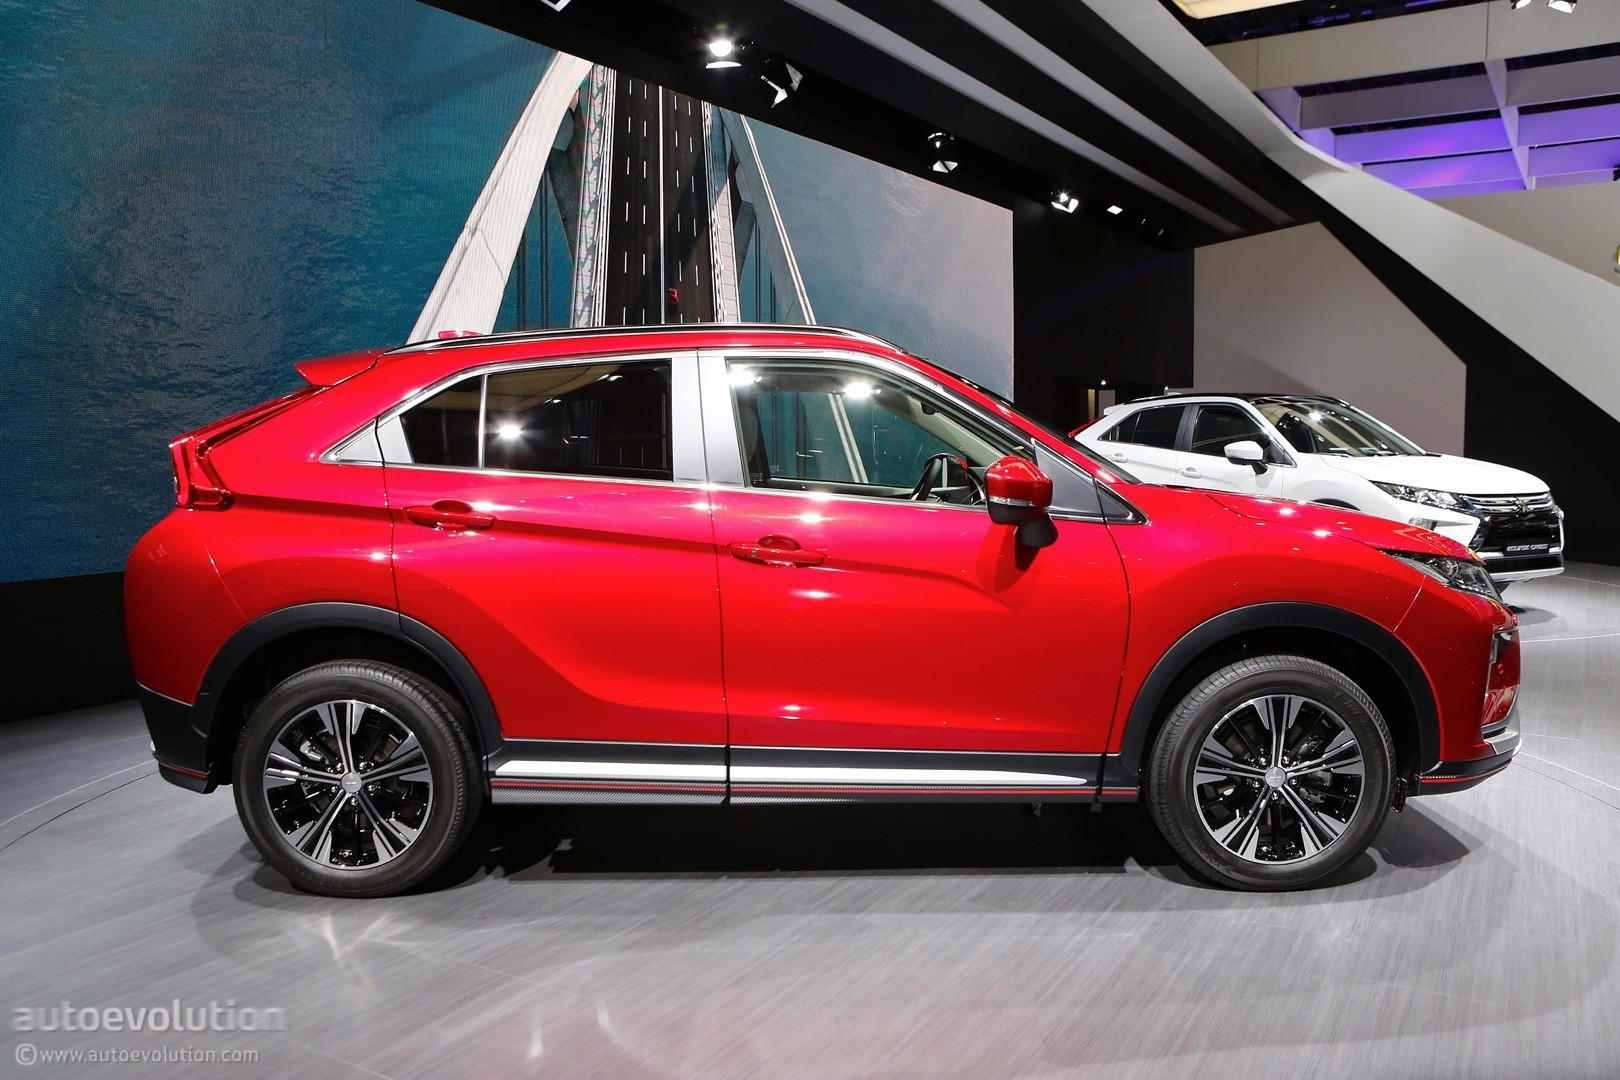 2018 mitsubishi eclipse cross looks even better up close and personal autoevolution. Black Bedroom Furniture Sets. Home Design Ideas